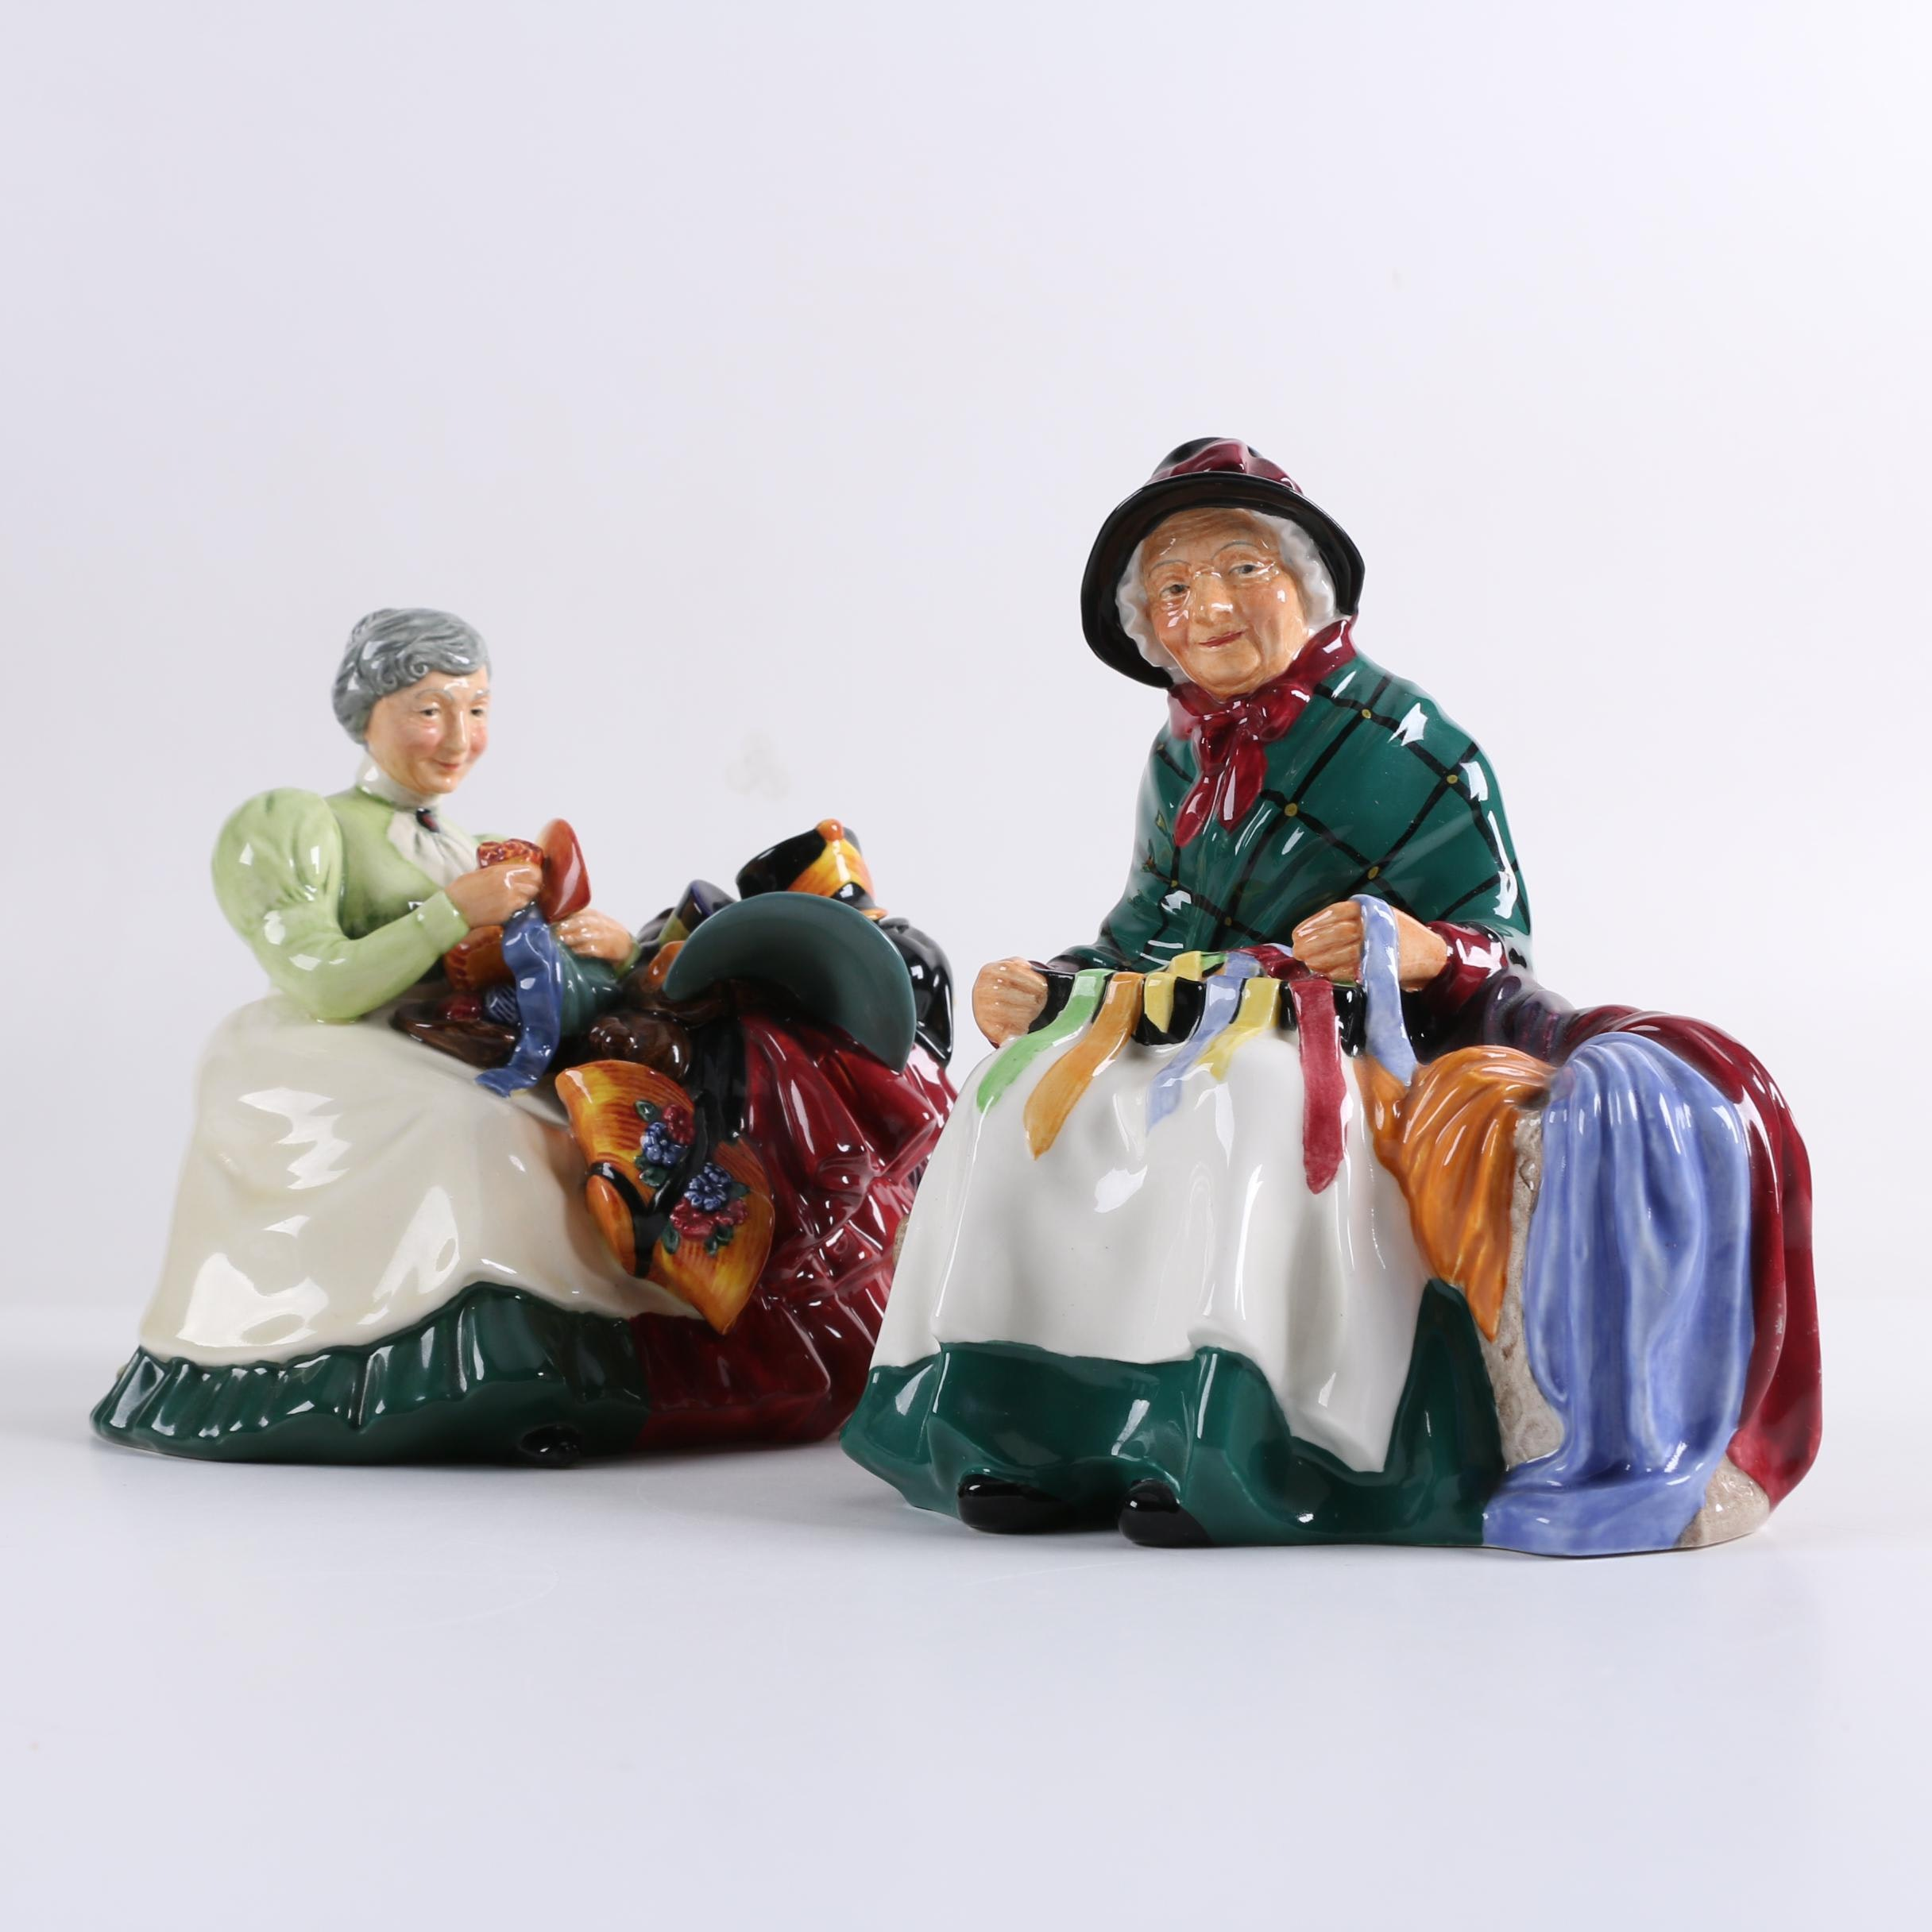 """Royal Doulton """"Silks and Ribbons"""" and The Wardrobe Mistress"""" Figurines"""